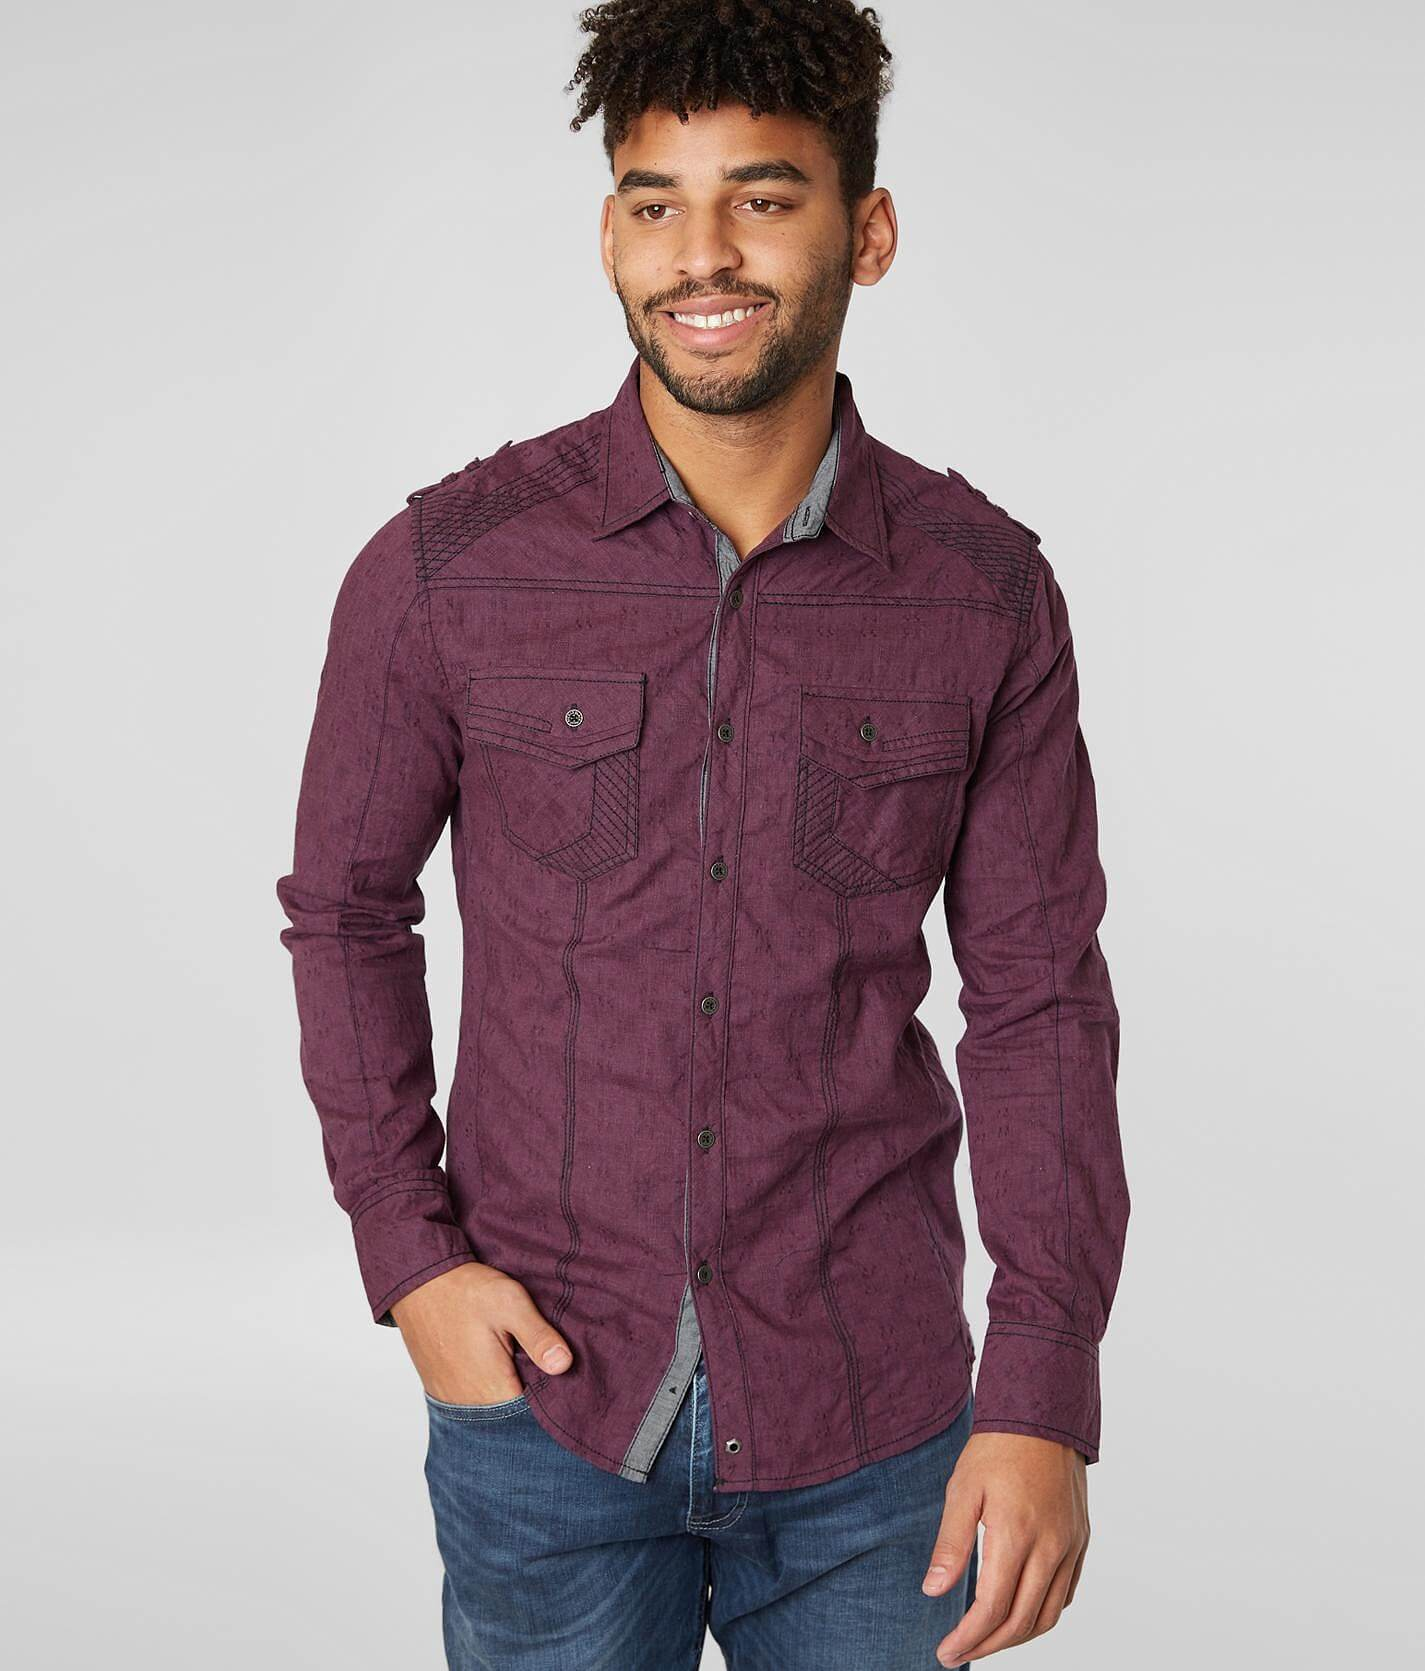 Buckle Shirts for Men